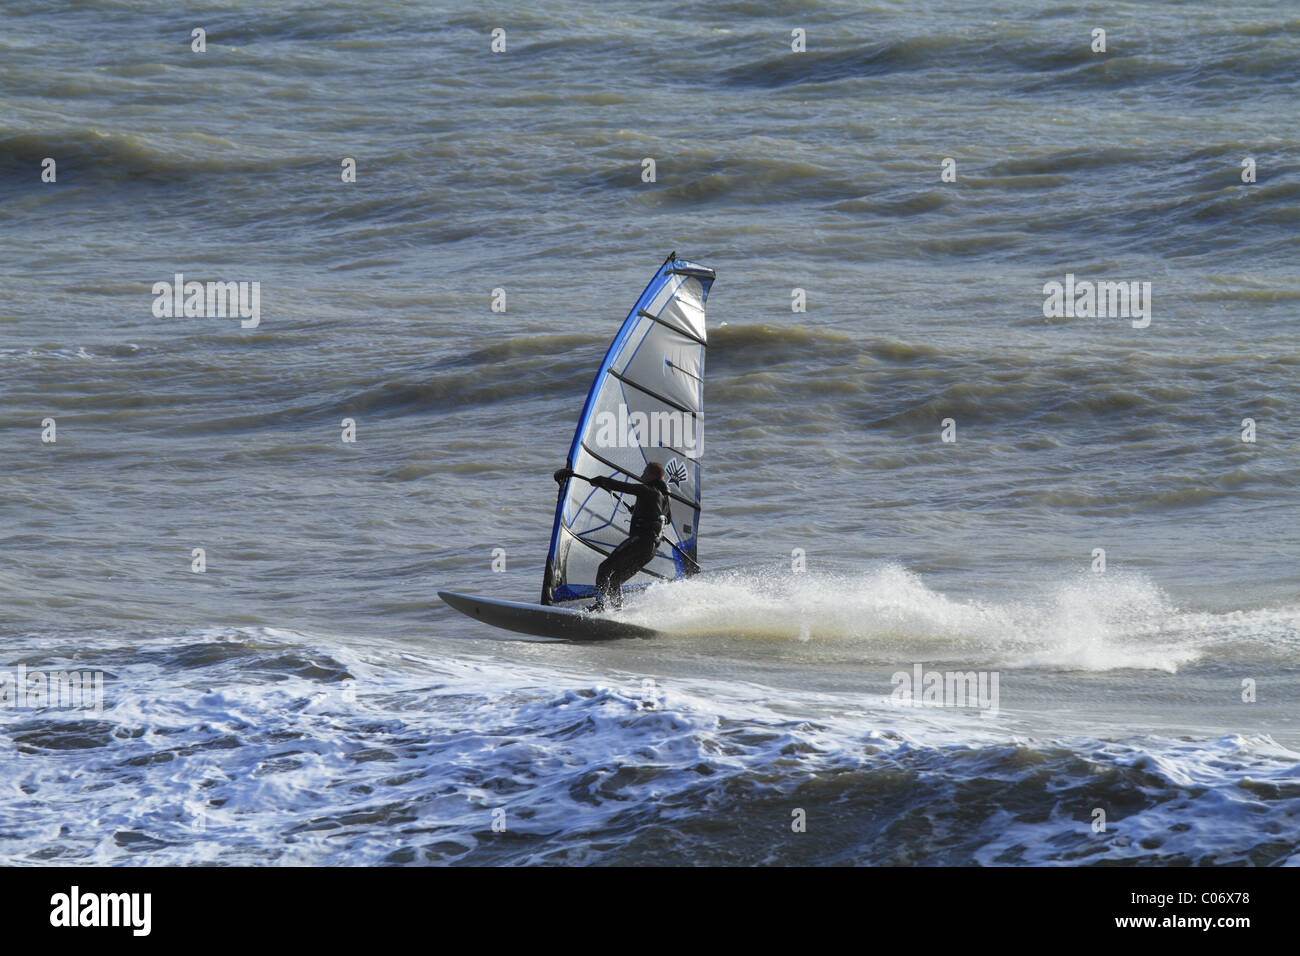 Wind surf off Eastbourne, East Sussex, Inghilterra. Immagini Stock